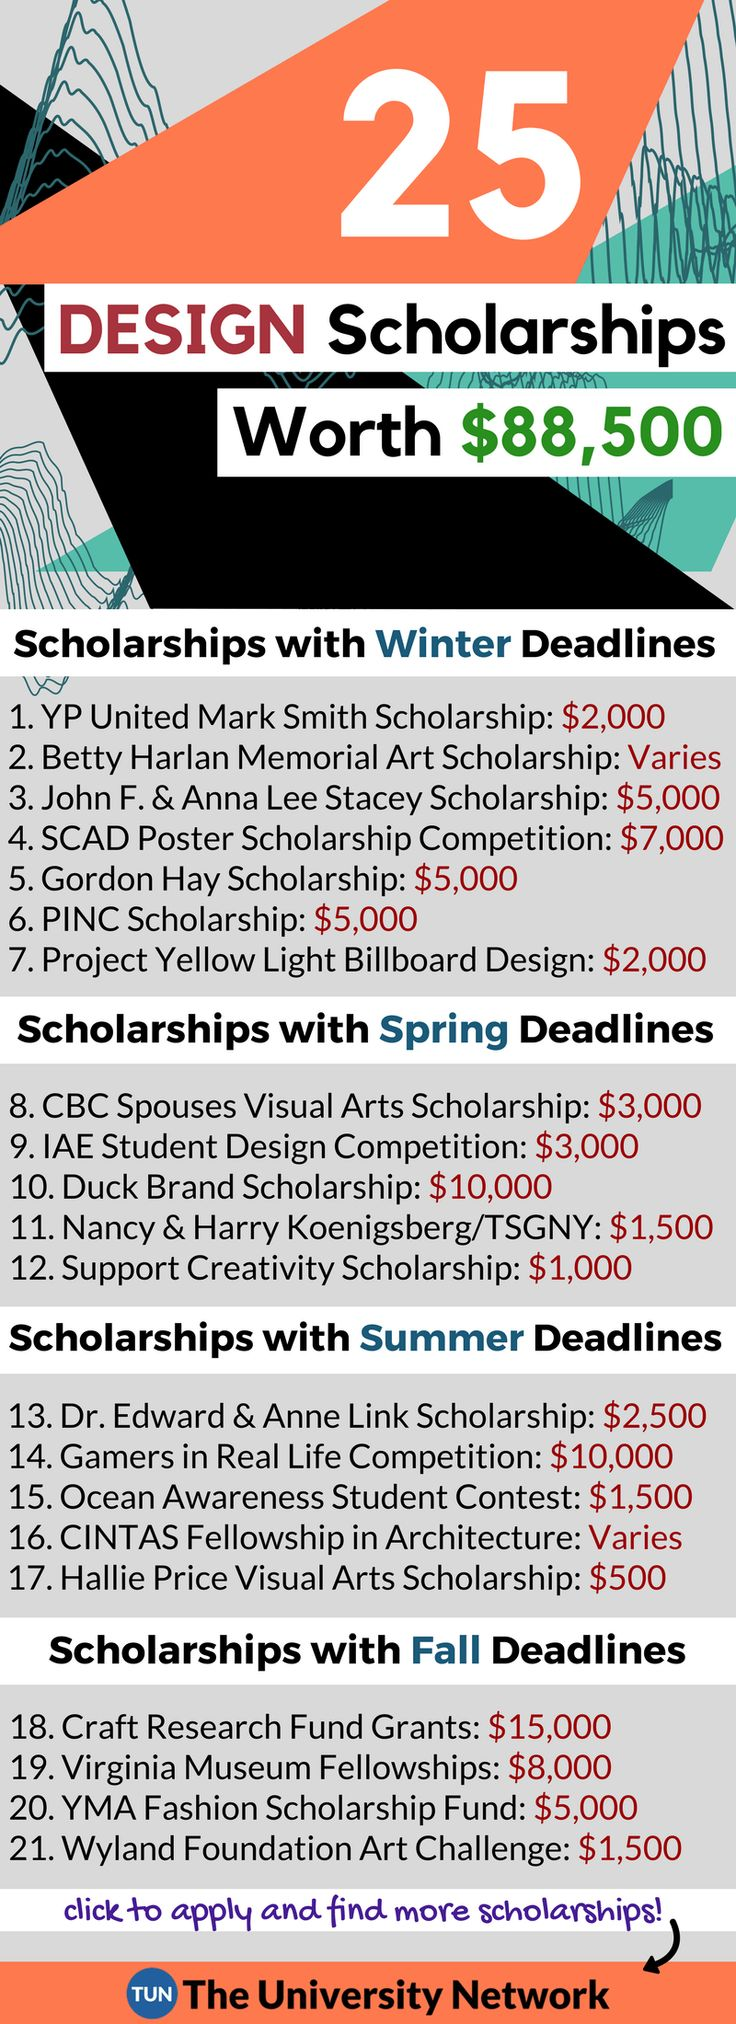 Here is a selection of Design Scholarships that are listed on TUN.